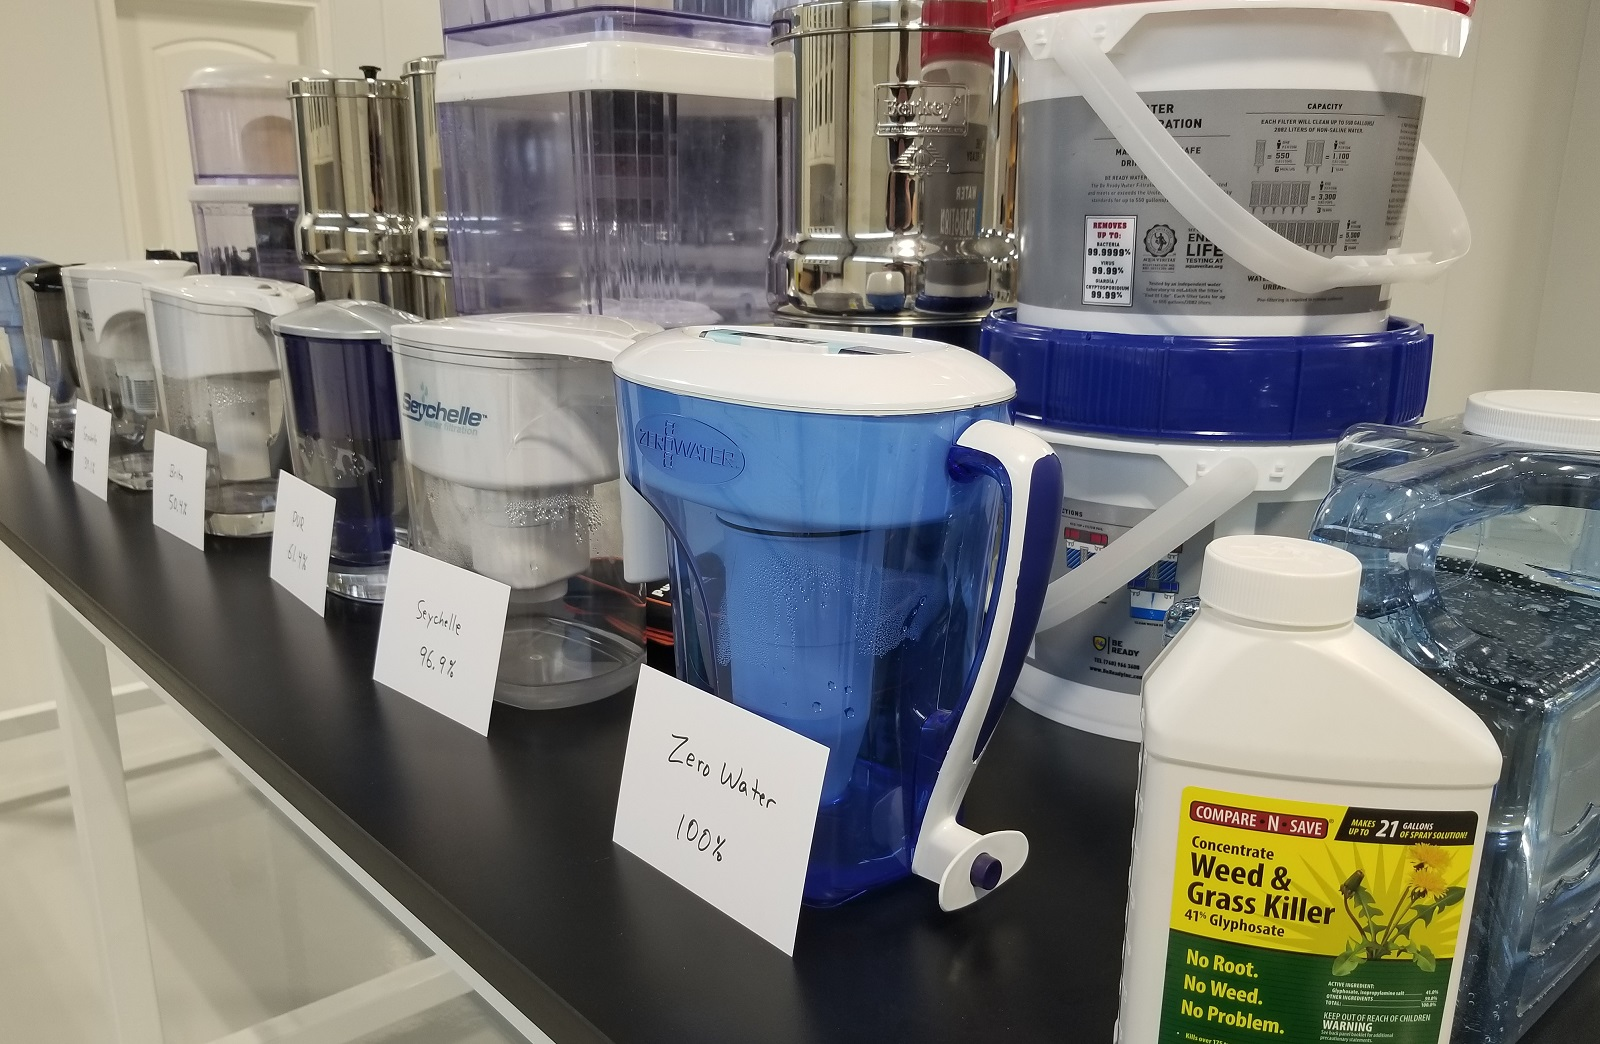 Water filter glyphosate removal lab test results released by Natural